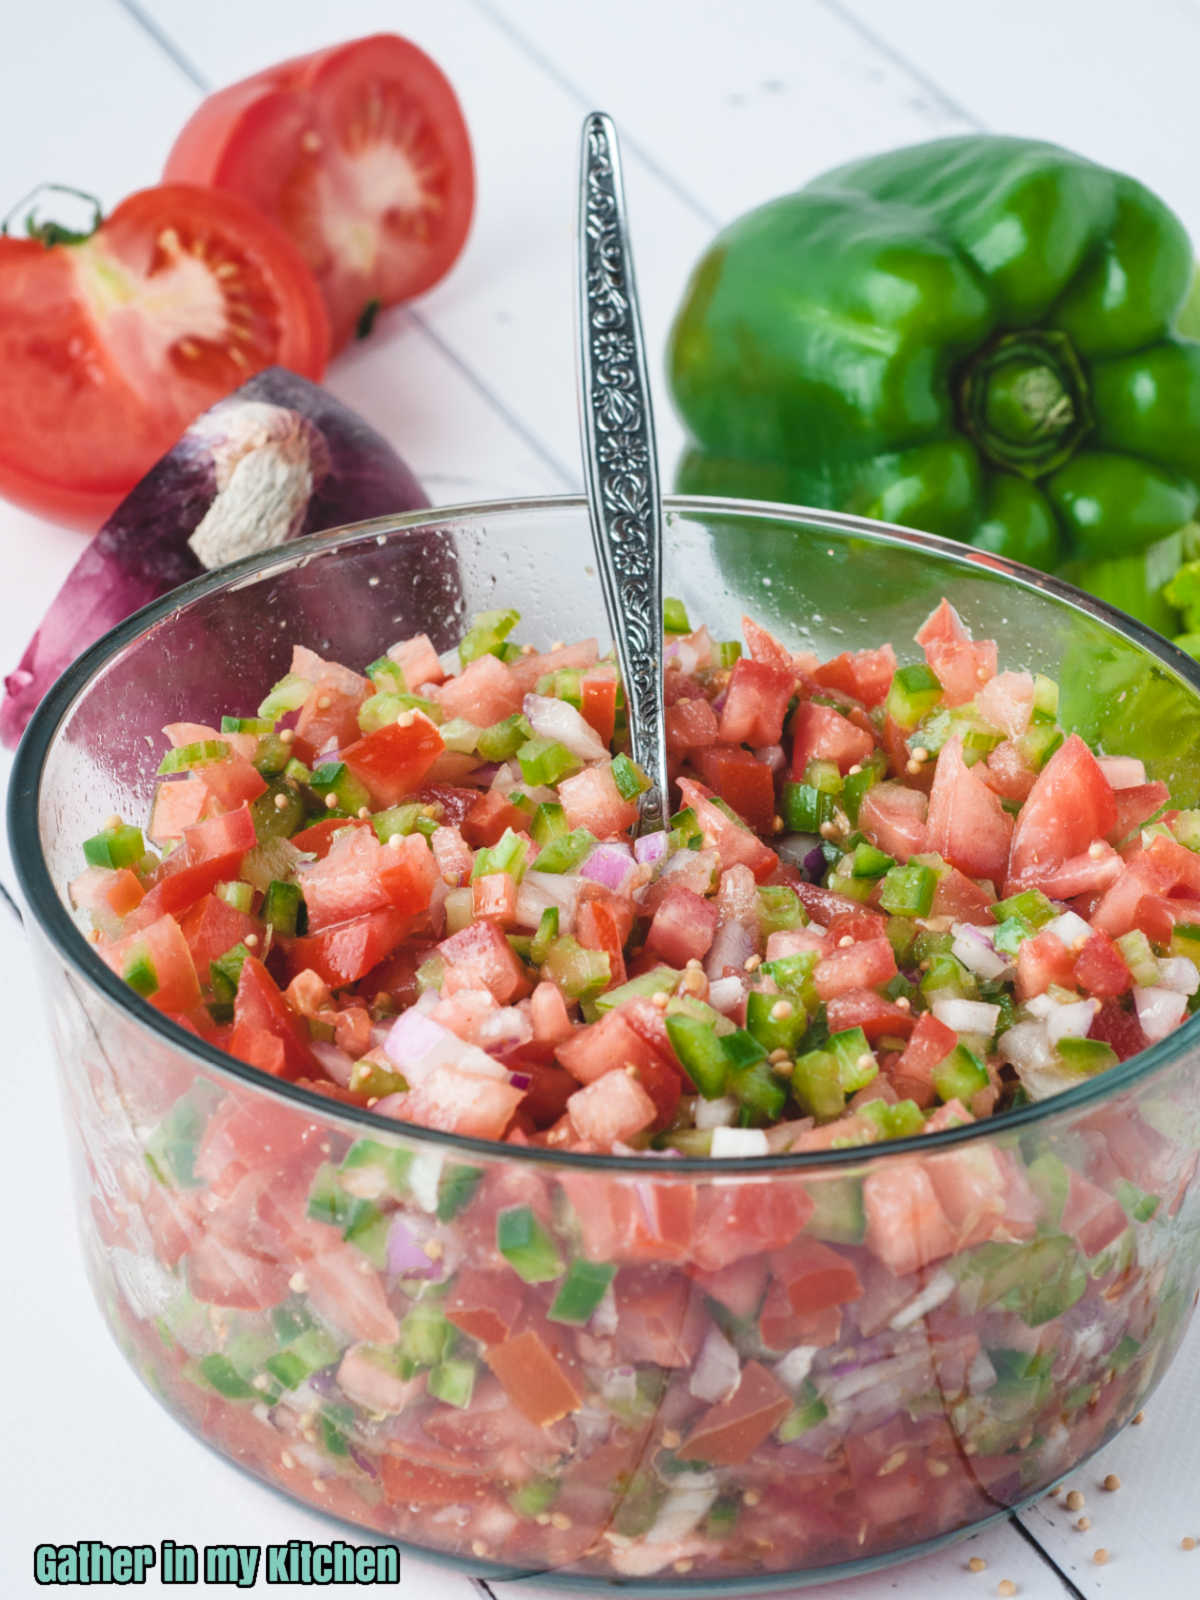 clear bowl with Pico de Gallo and a spoon in it.  Half of a tomato and a full green bell pepper in the background